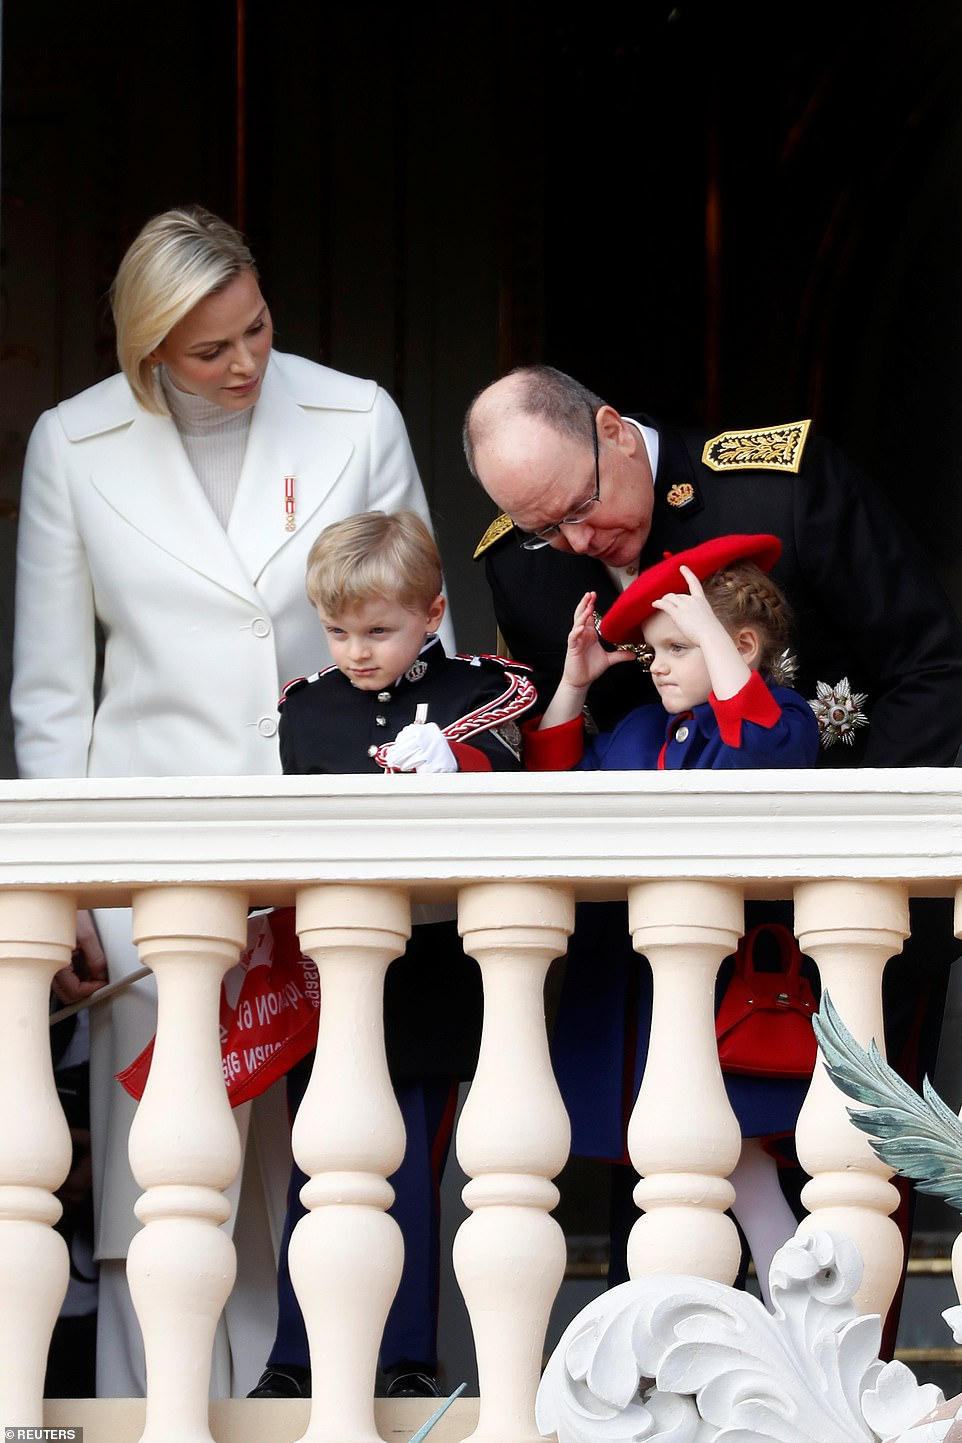 Prince Albert II of Monaco and his wife Princess Charlene, their children Prince Jacques and Princess Gabriella stand on the palace balcony